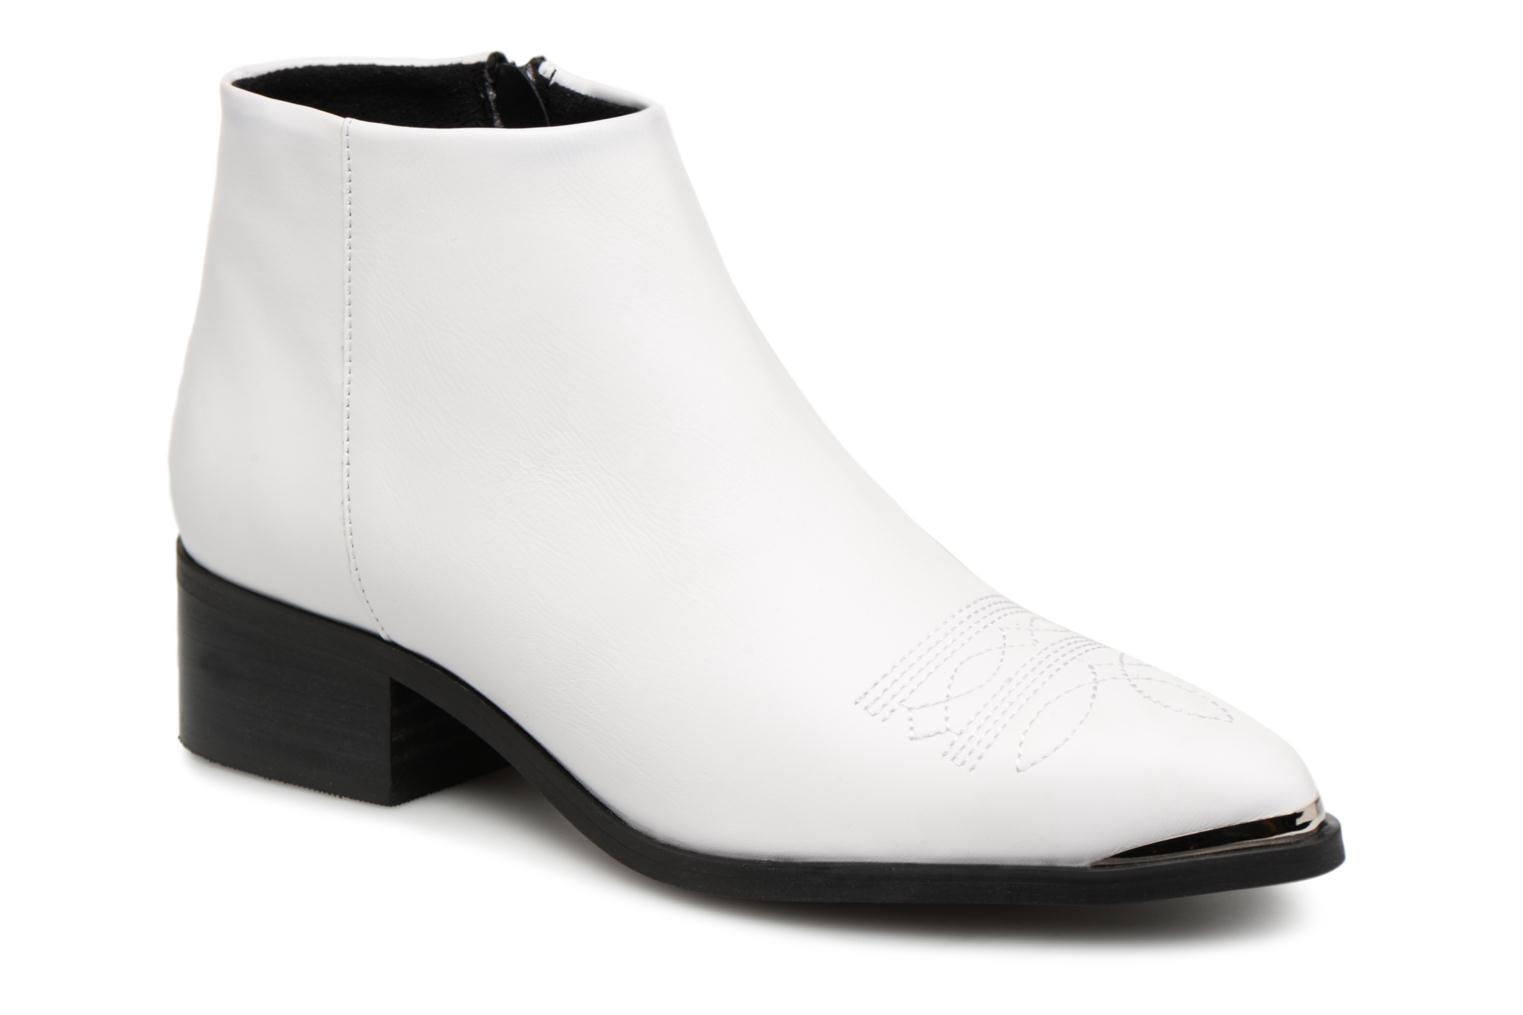 VmBella leather boot par Vero Moda